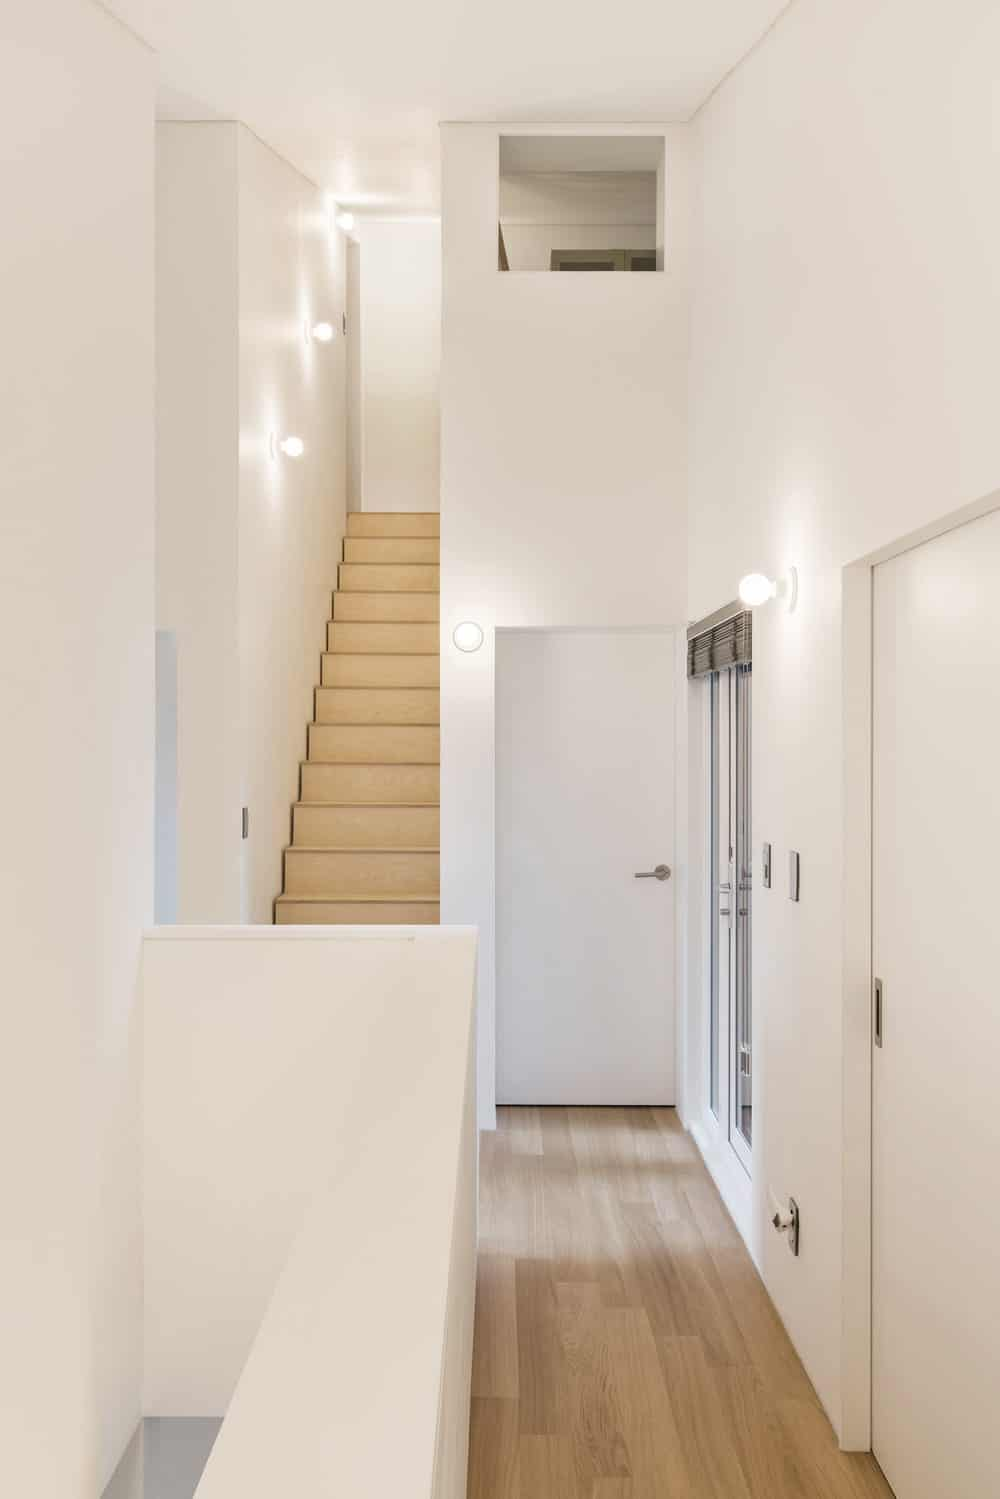 This is another angle of the indoor corridor that shows the staircase with light wooden steps.